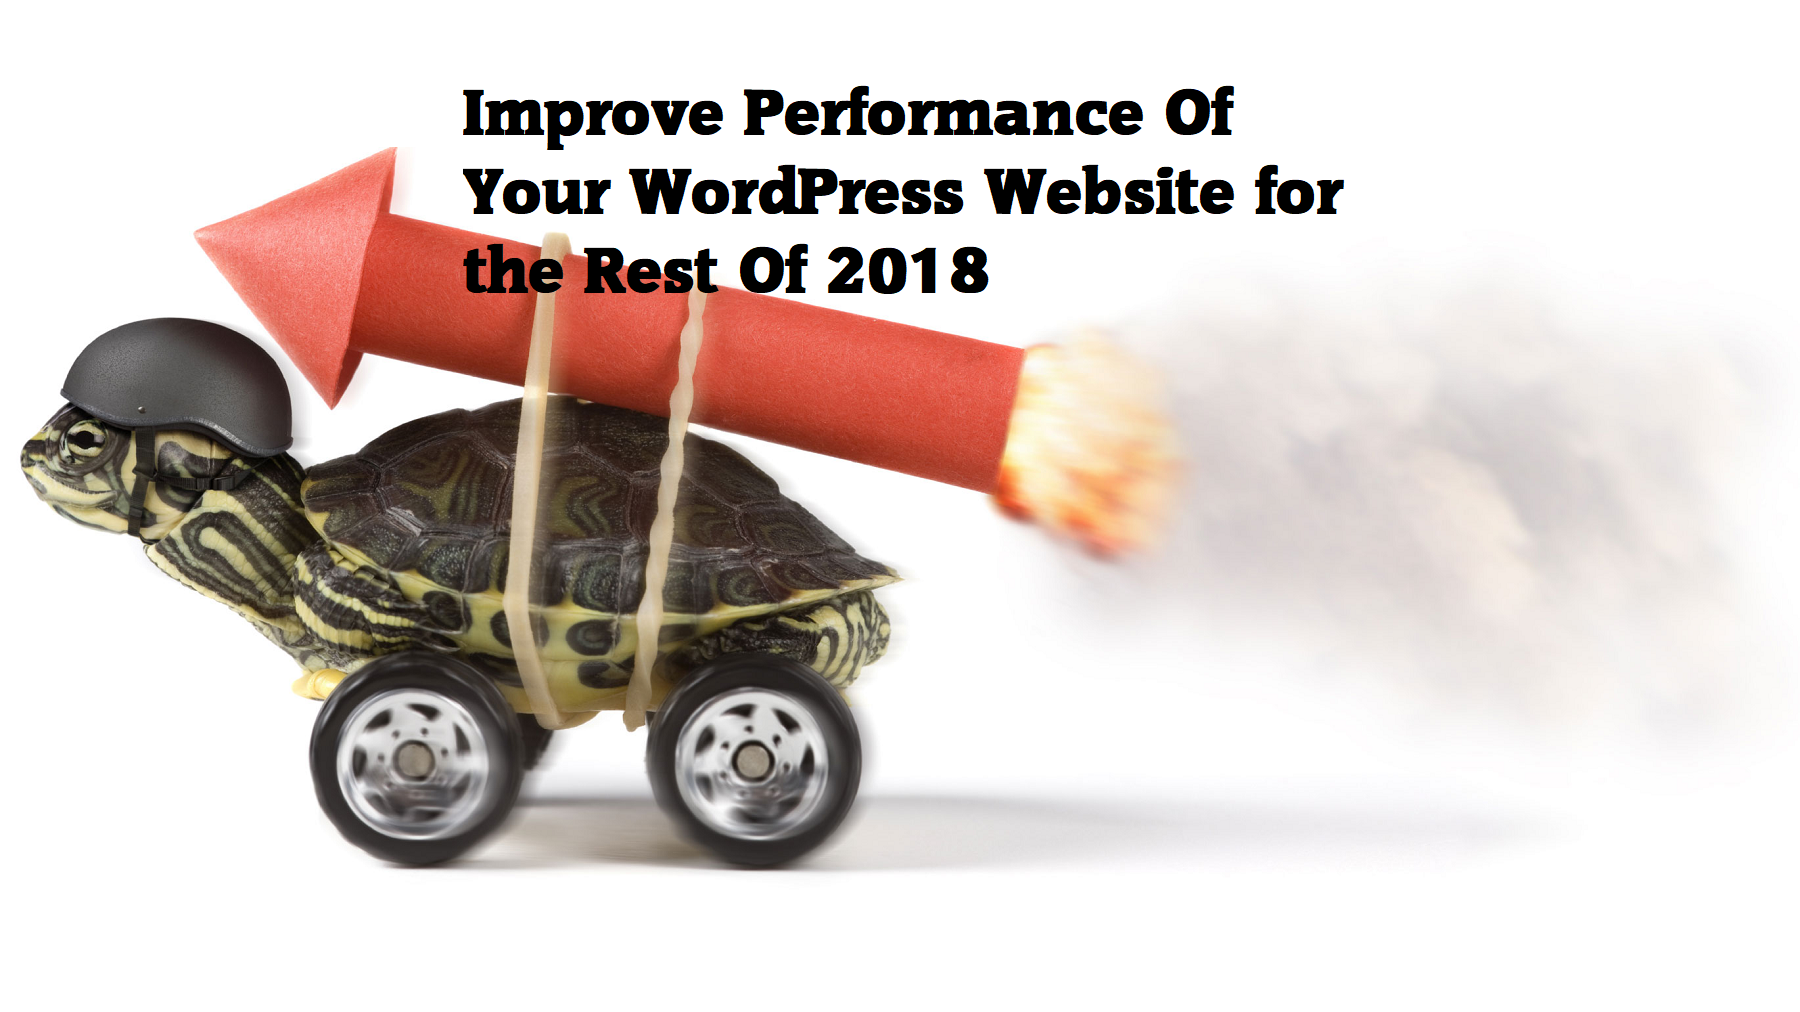 Make your WordPress website faster for the rest of 2018